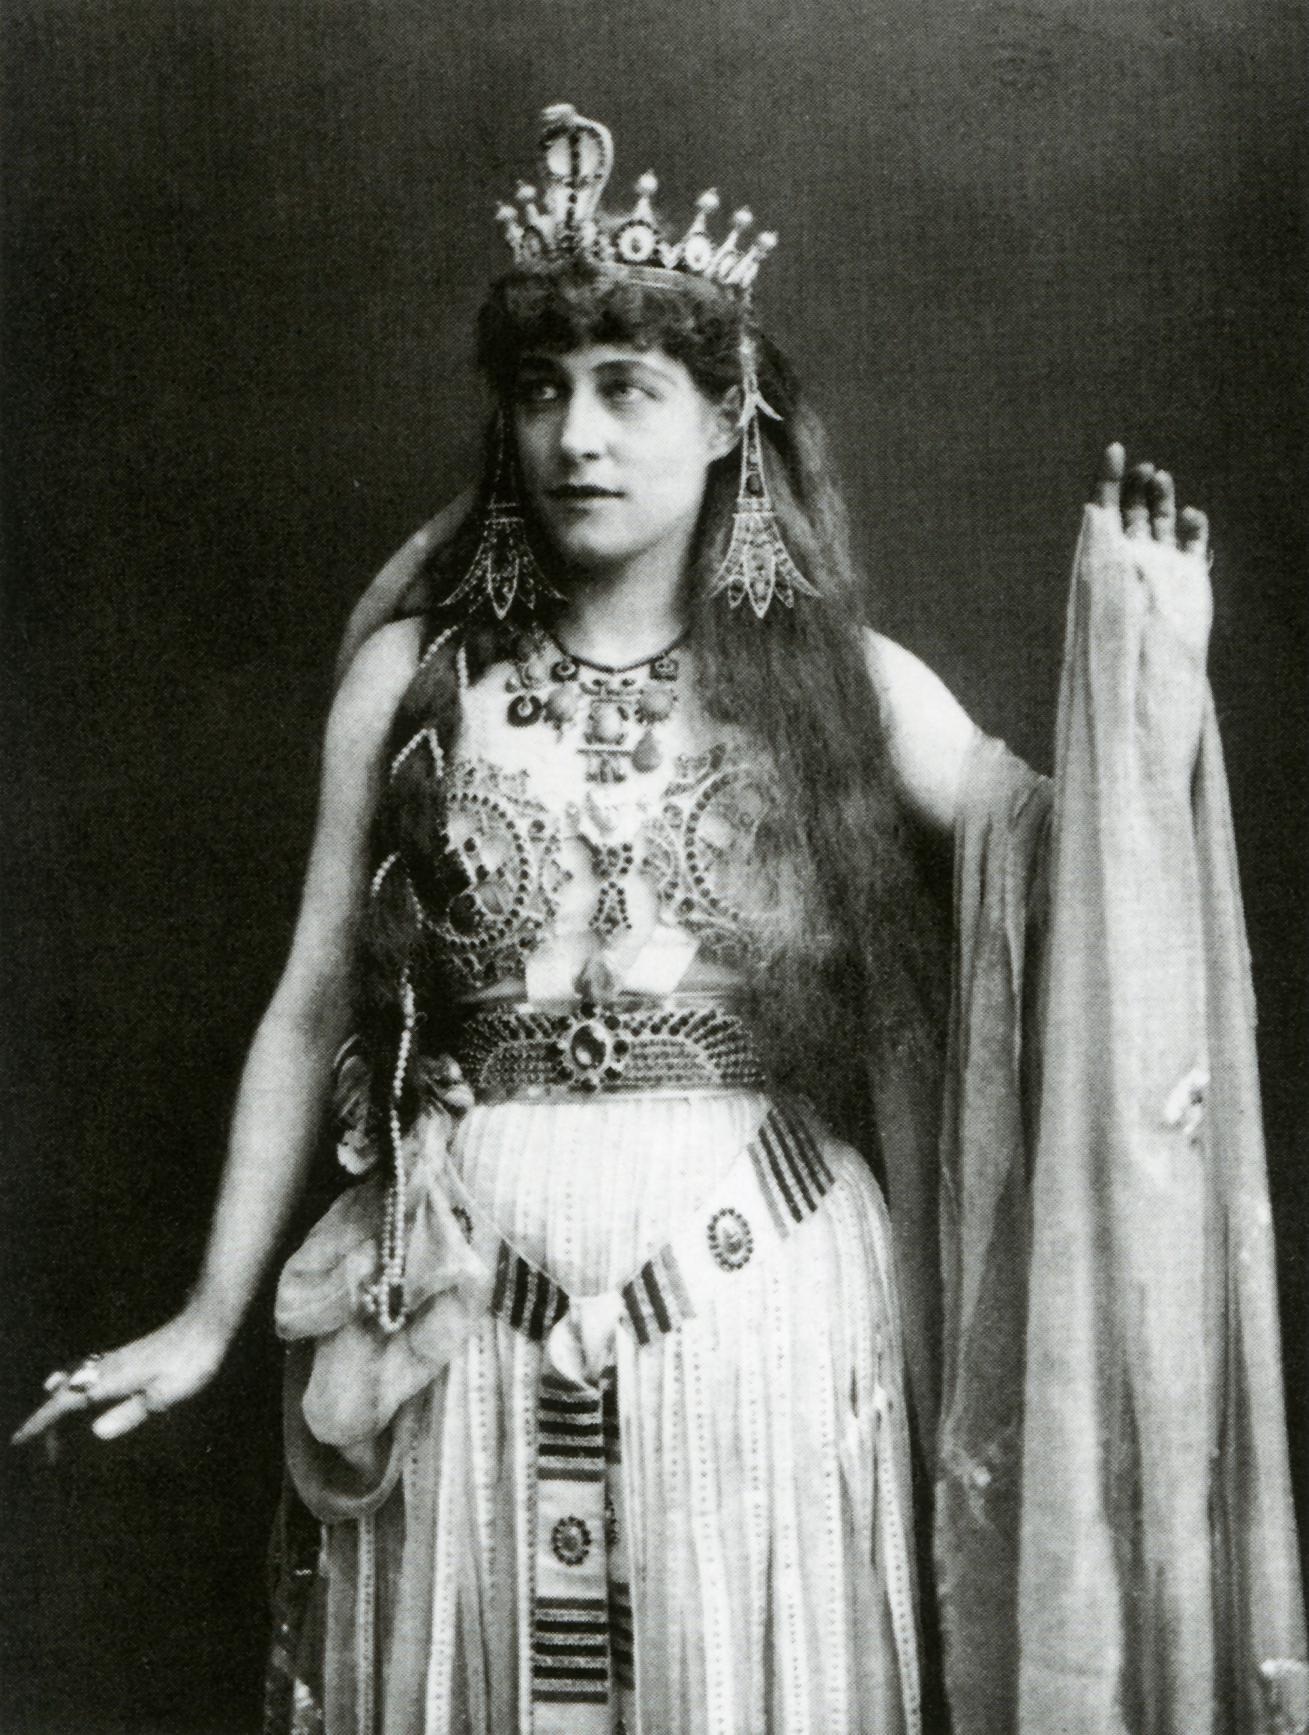 lily langtry as Cleopatra - October 13, 1853 – February 12, 1929)